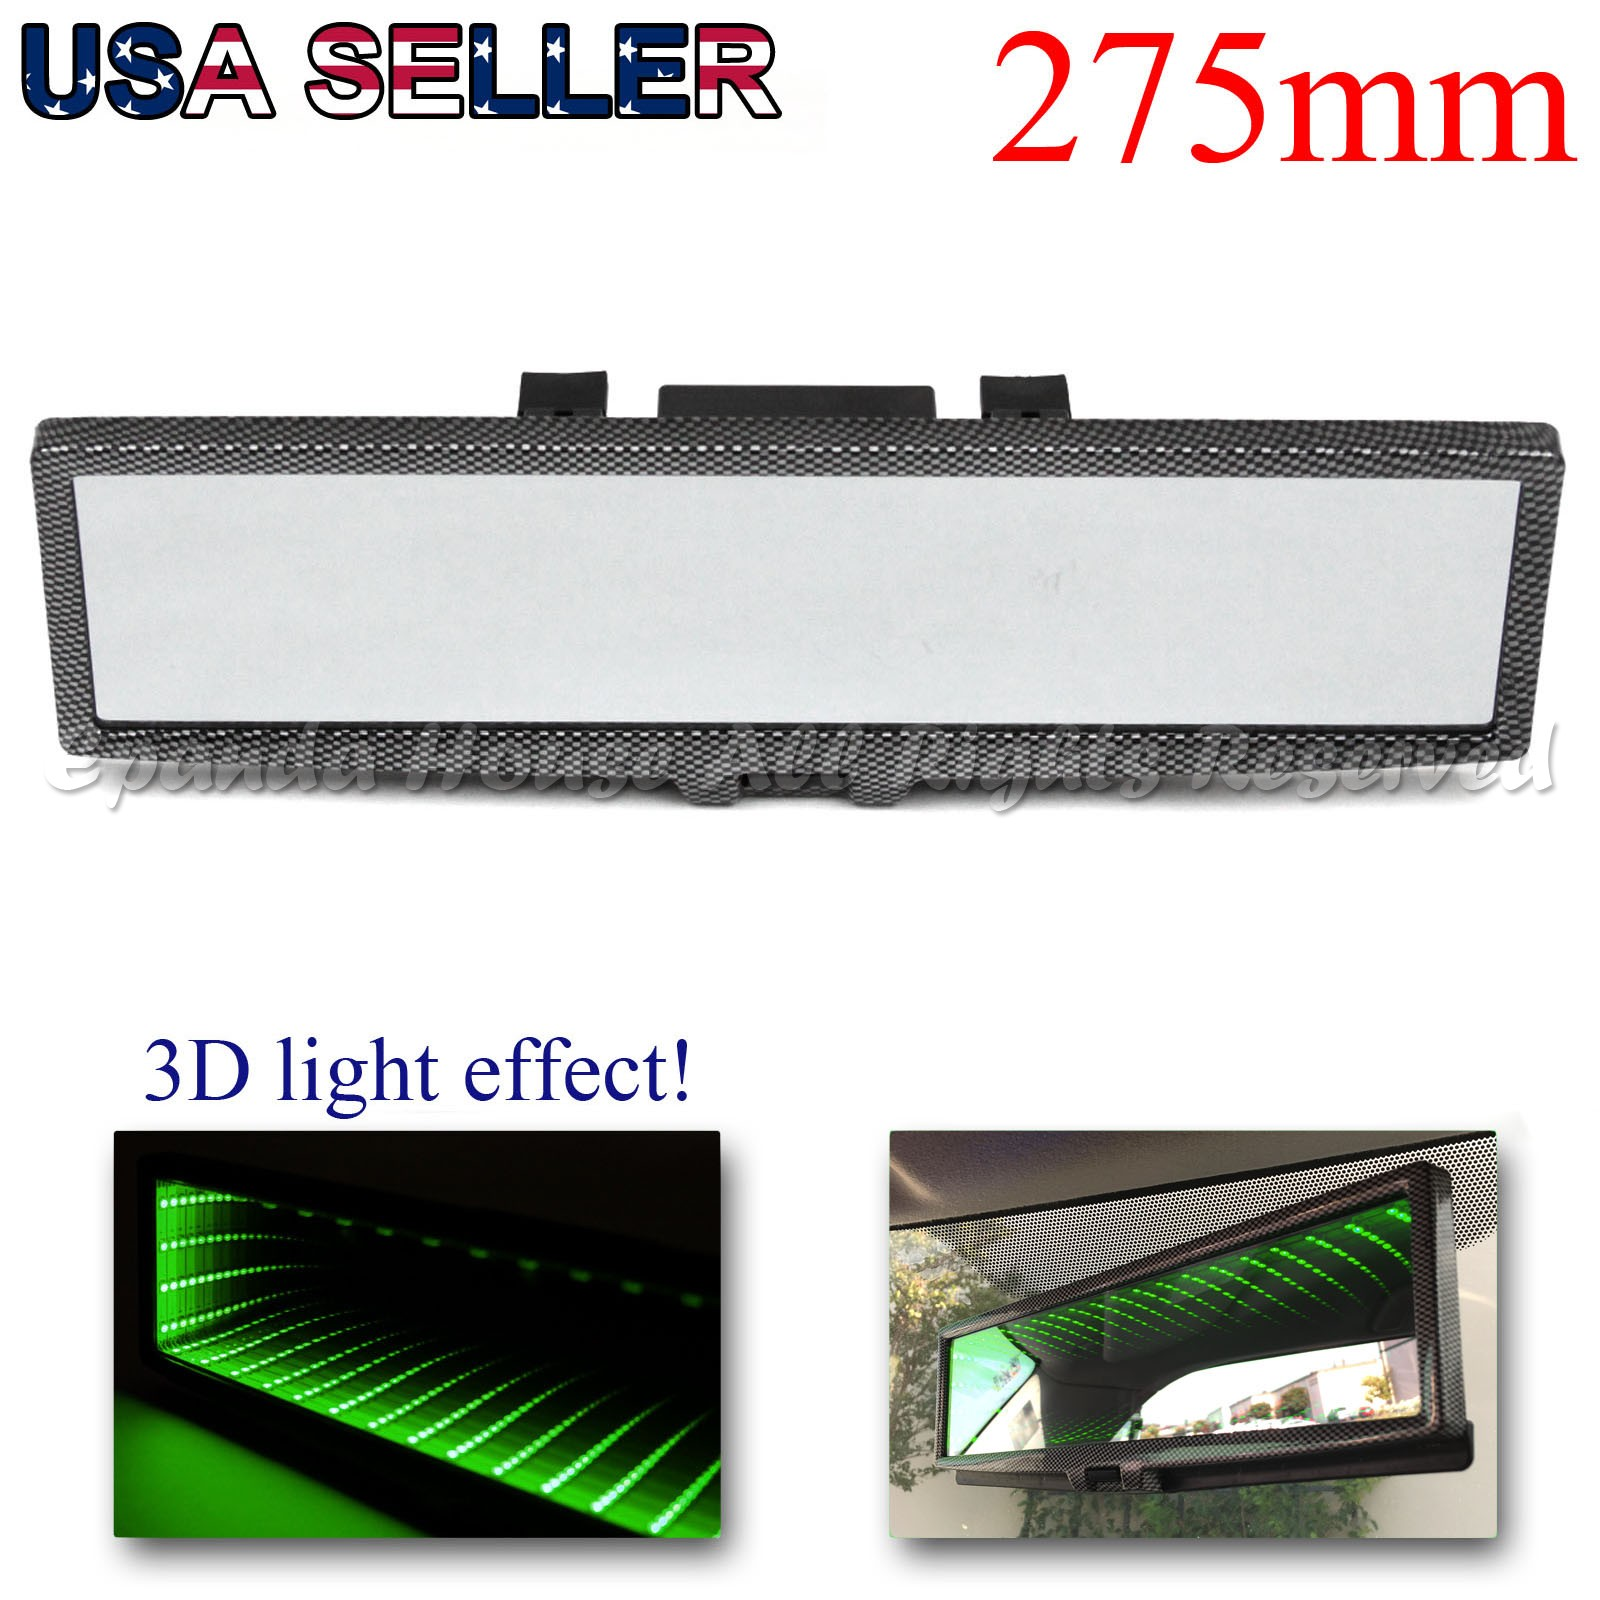 FOR JDM CAR 275MM WIDE FLAT INTERIOR CLIP ON REAR VIEW MIRROR WHITE LED 3D LIGHT